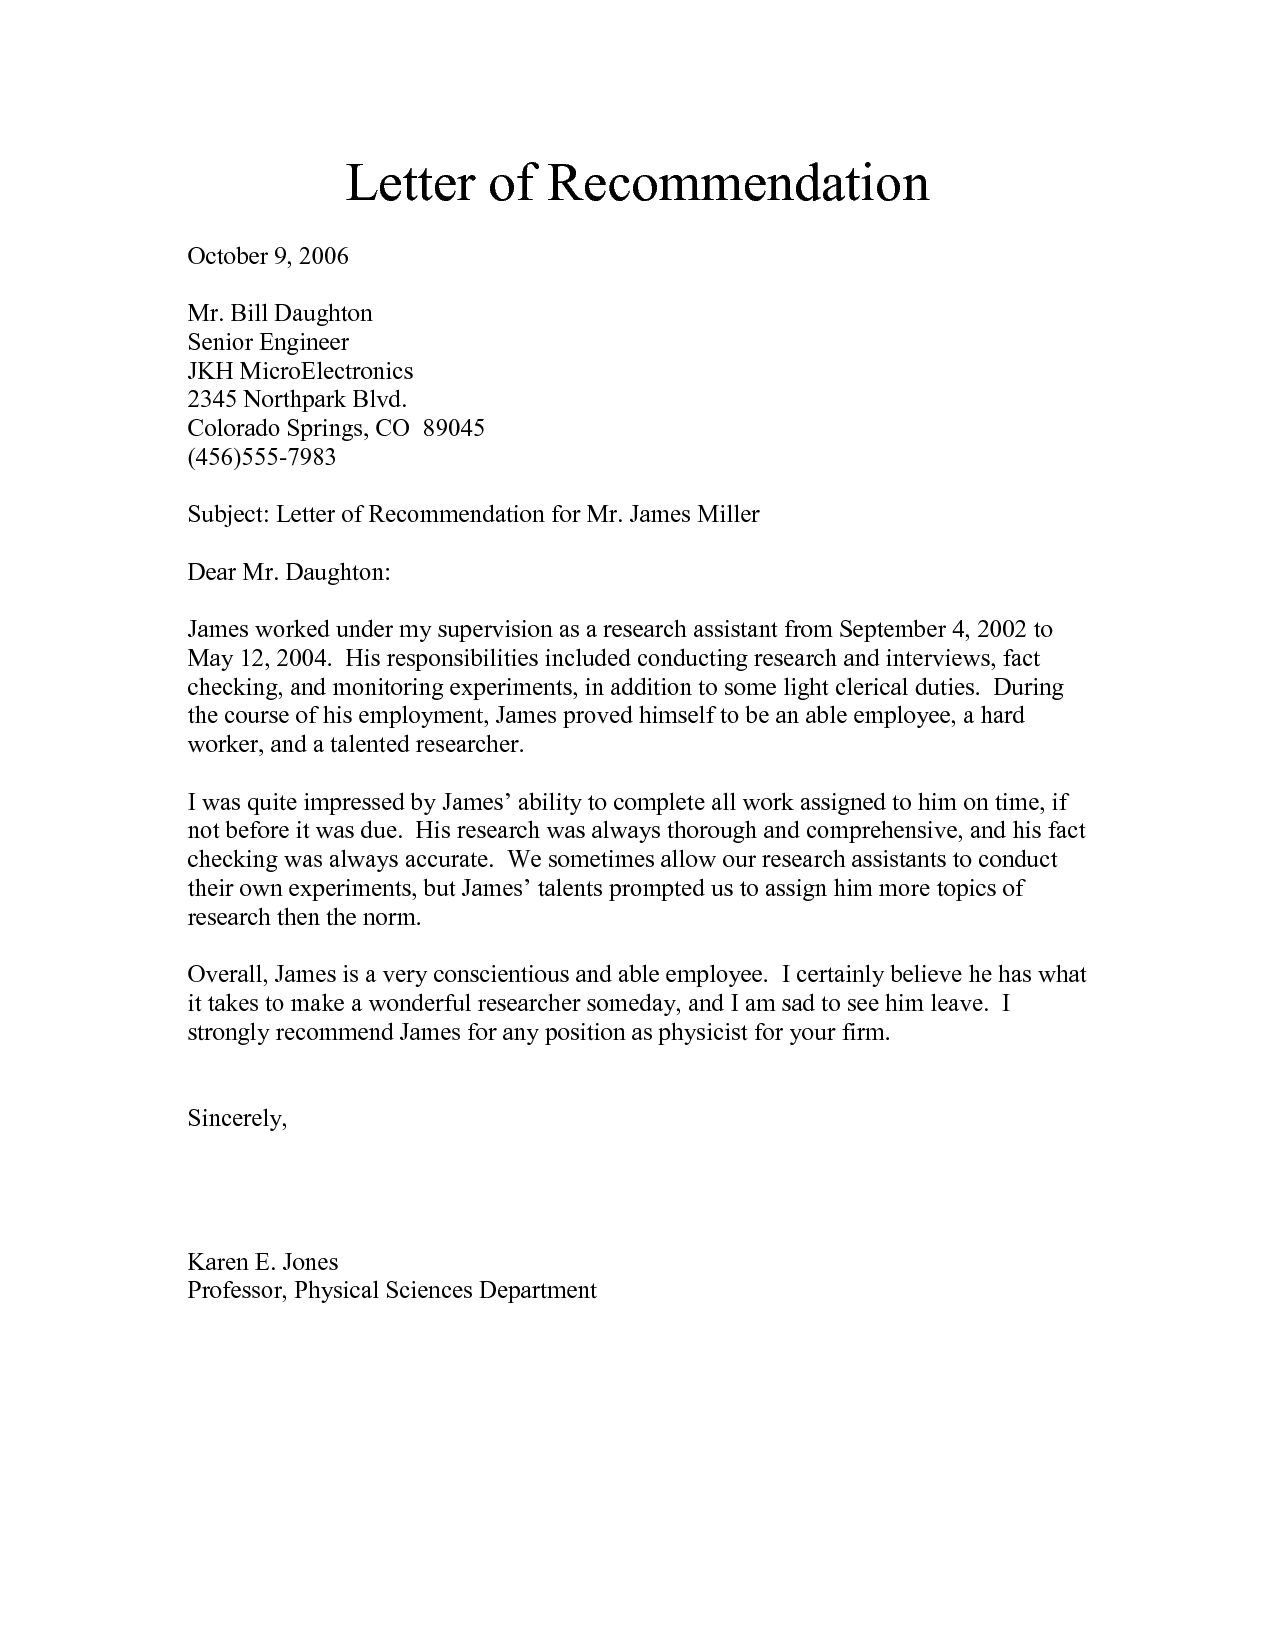 Army Letter Of Recommendation Exampleletter Of Recommendation Formal